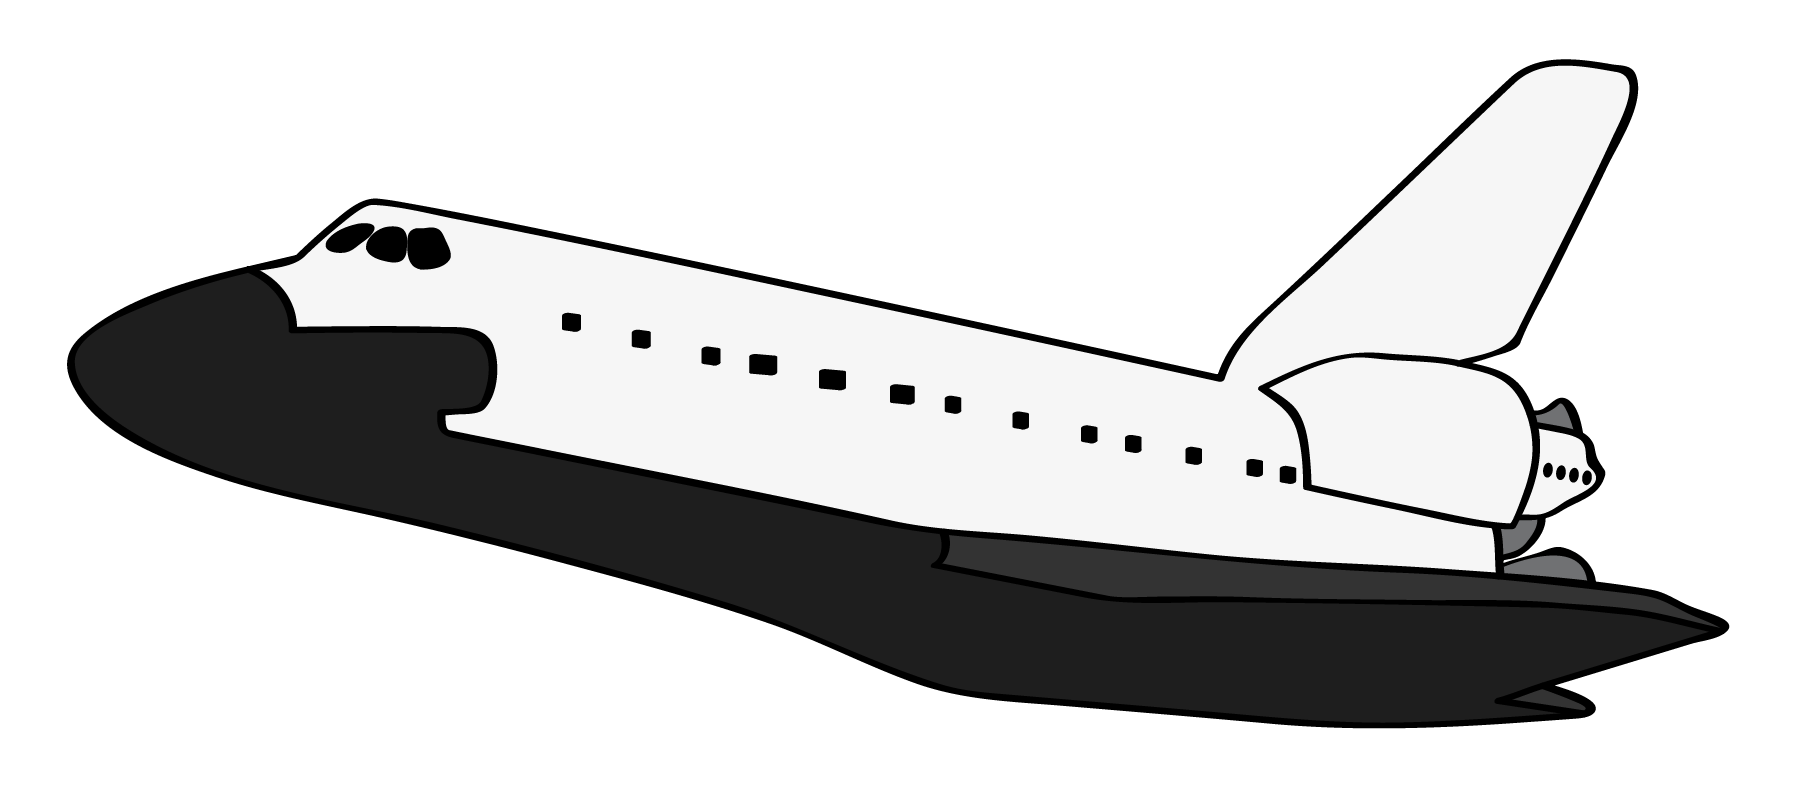 1817x803 Black And White Space Shuttle Clipart